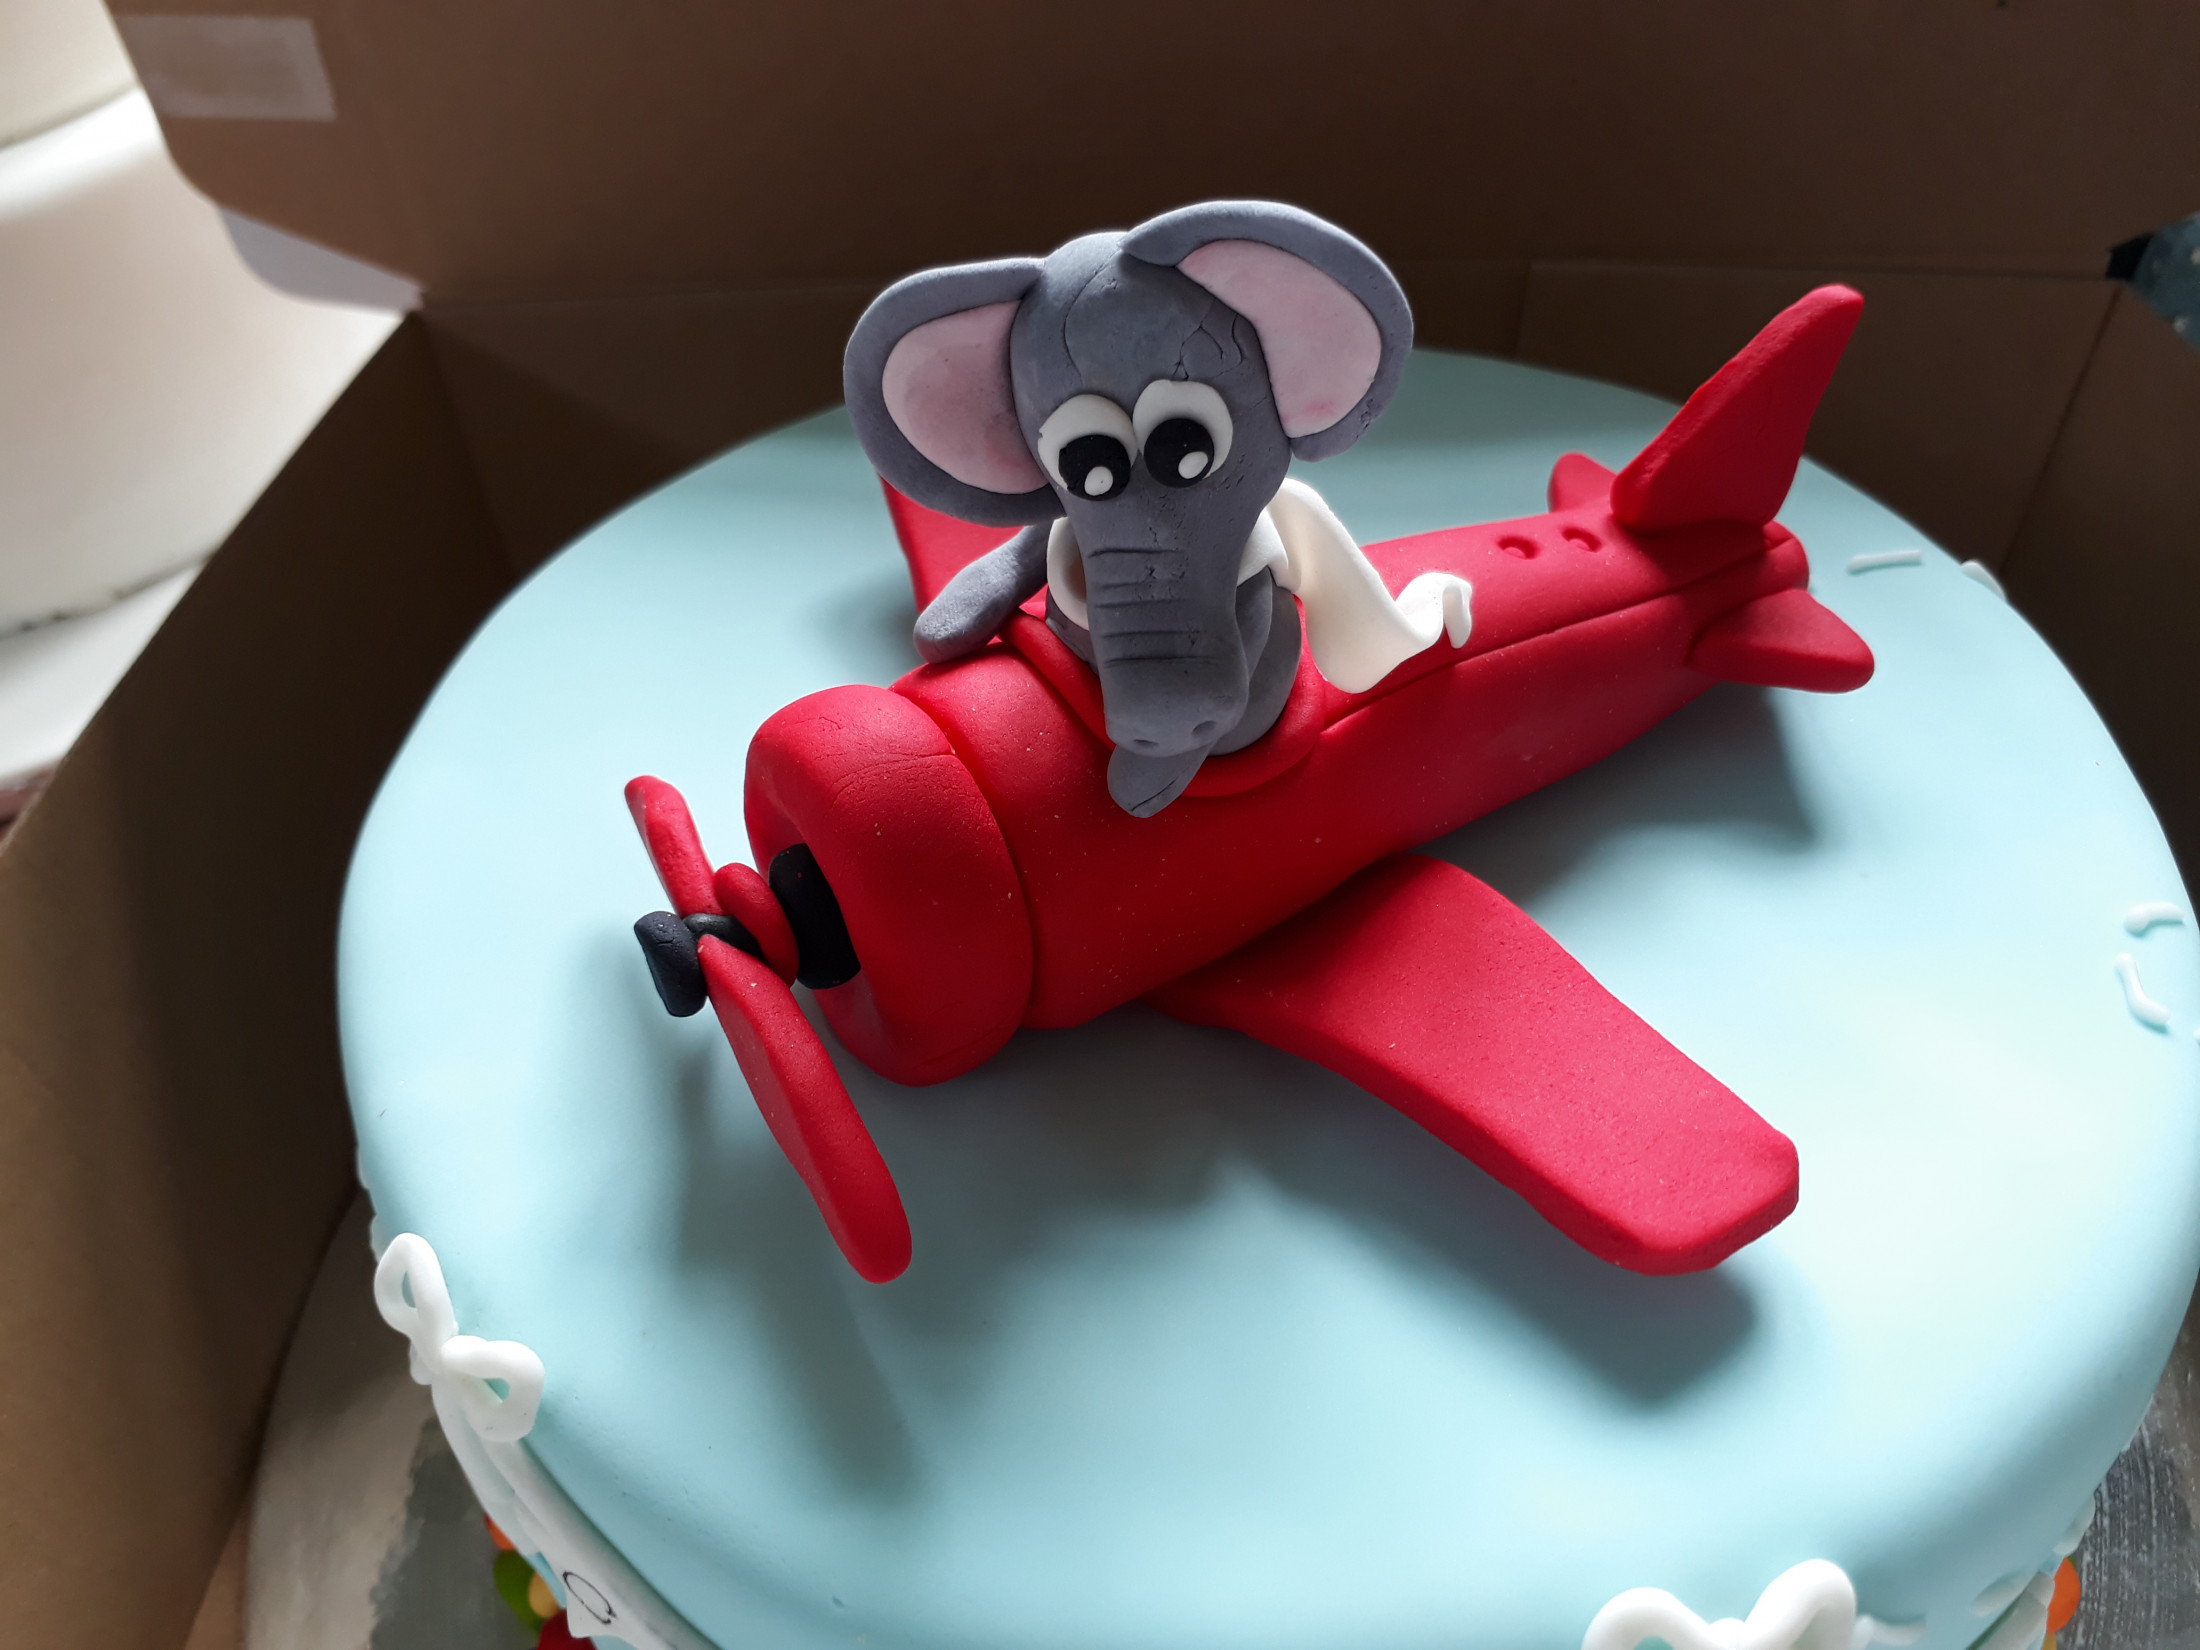 Cake Decorating - Create an Elephant in a Plane Cake Topper